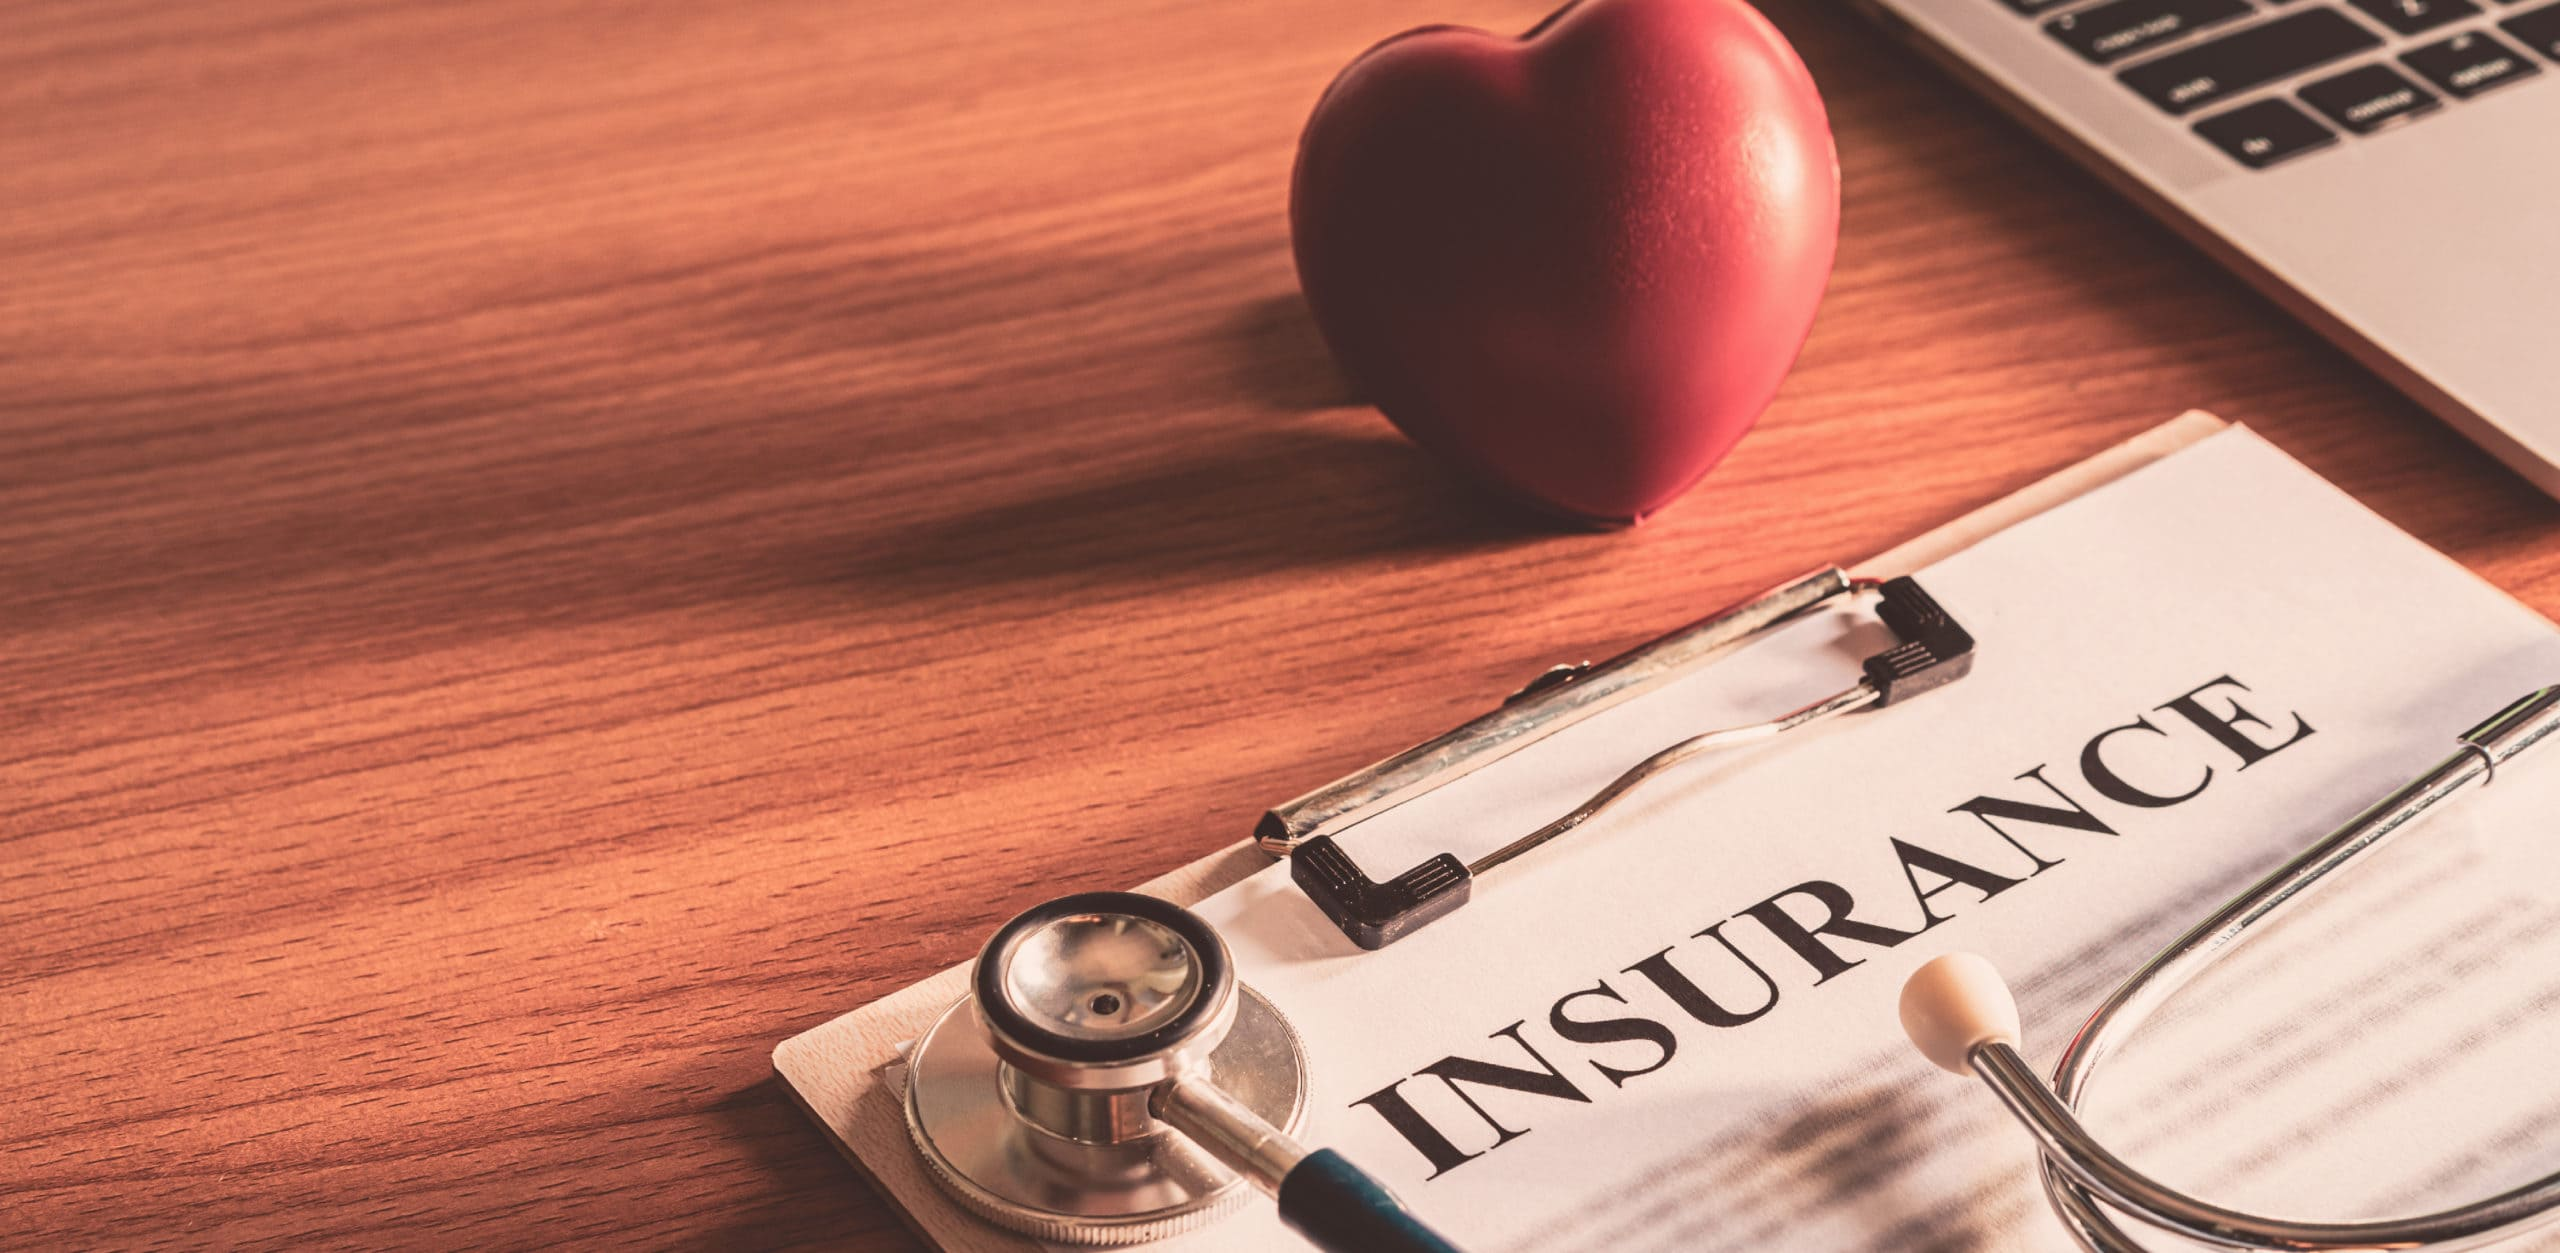 Term Insurance vs Life Insurance Plans - Types, Differences and Similarities